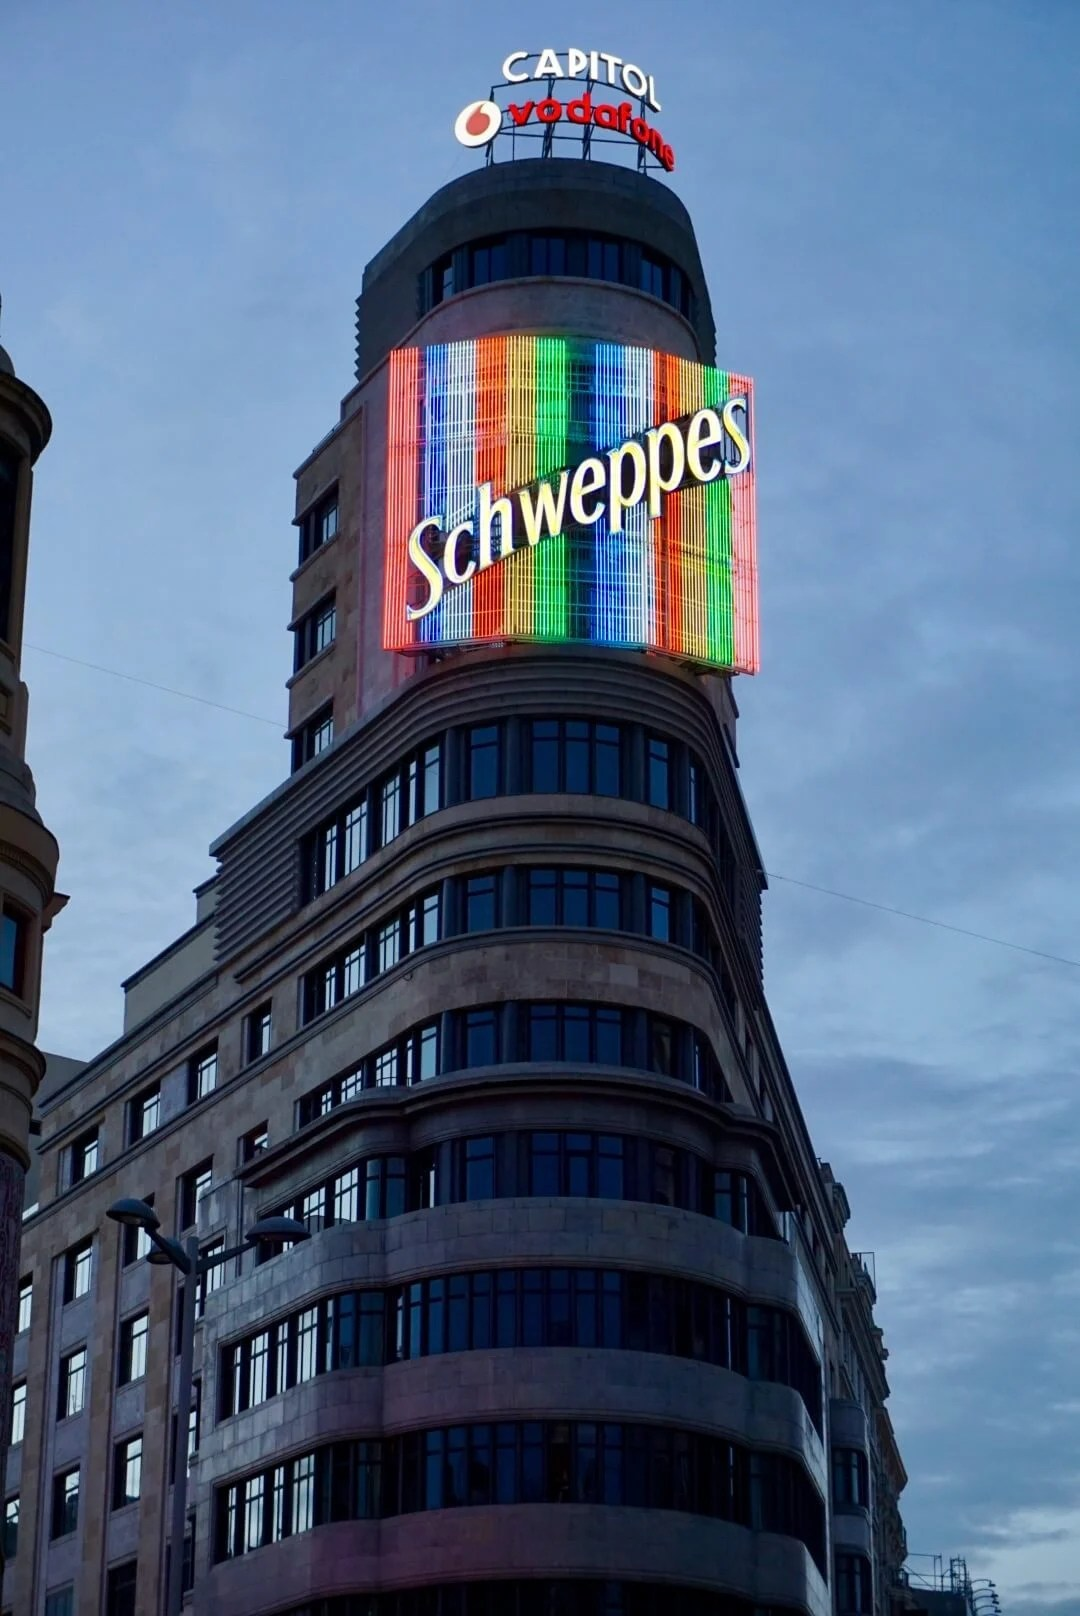 Madrid photo of Schweppes Sign at Carrion Building